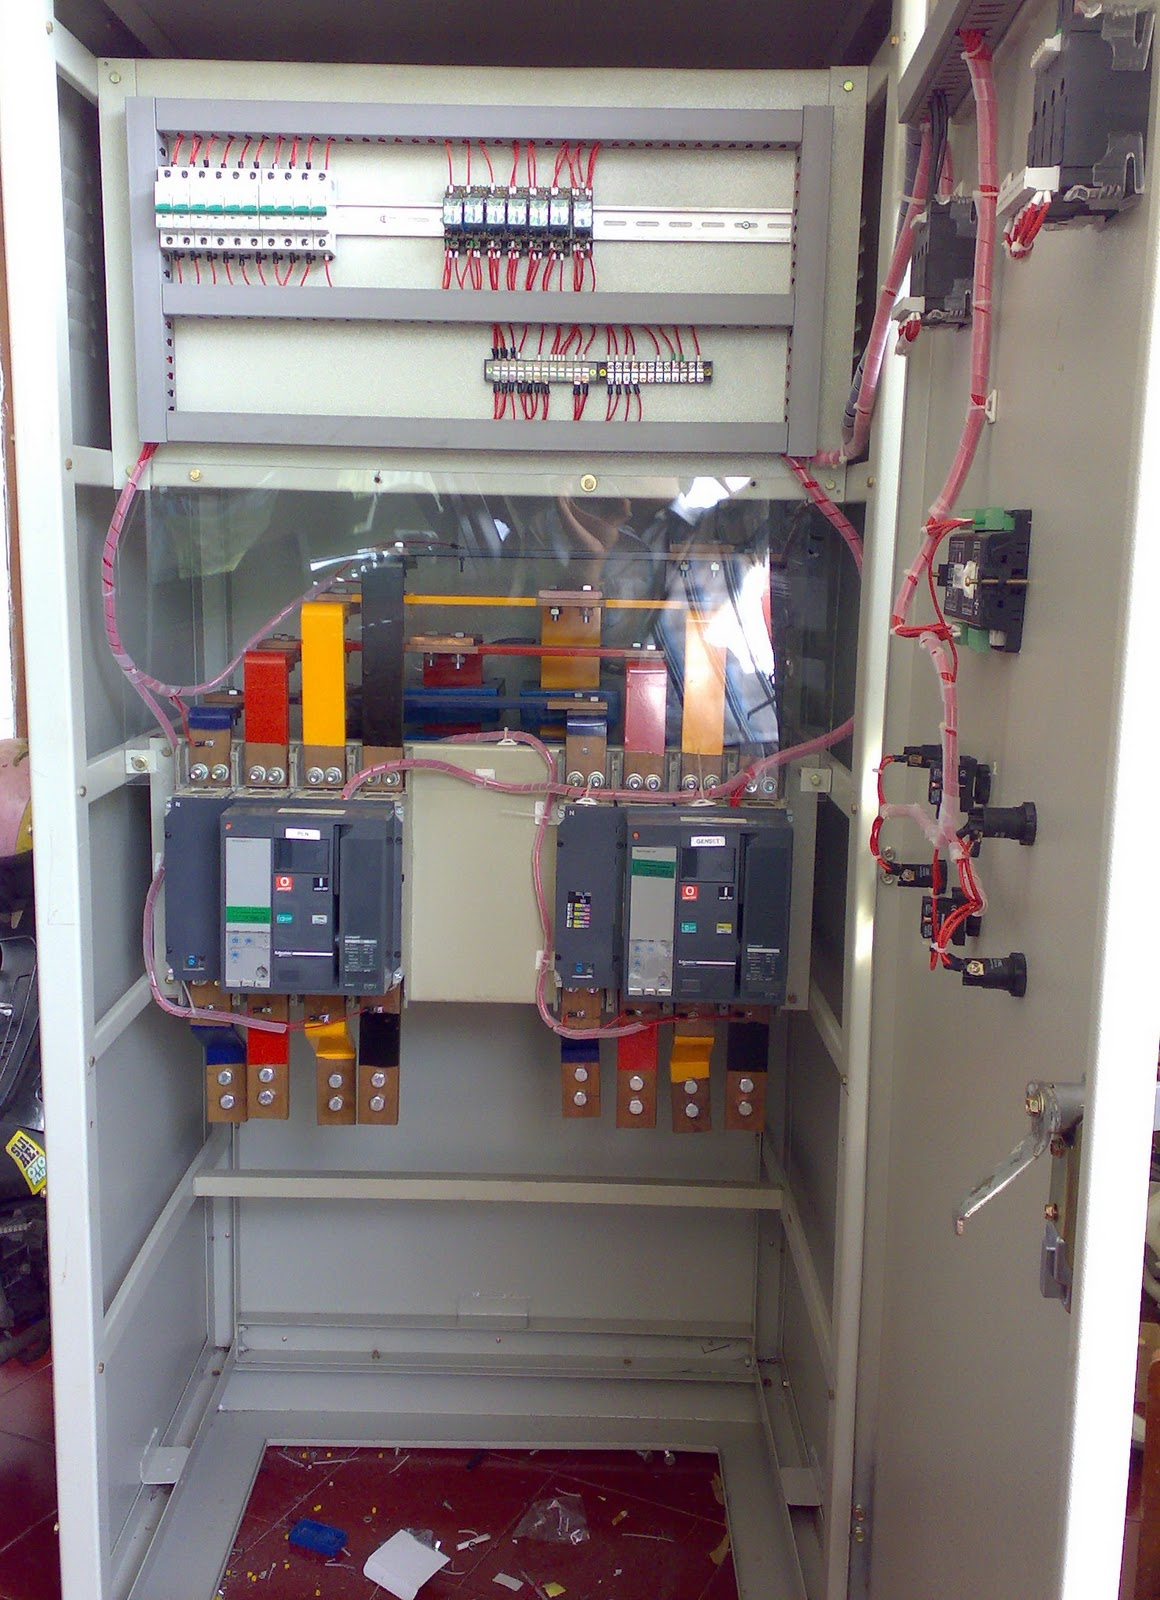 wiring diagram panel sinkron genset wiring image wiring diagram panel ats dan amf jodebal com on wiring diagram panel sinkron genset